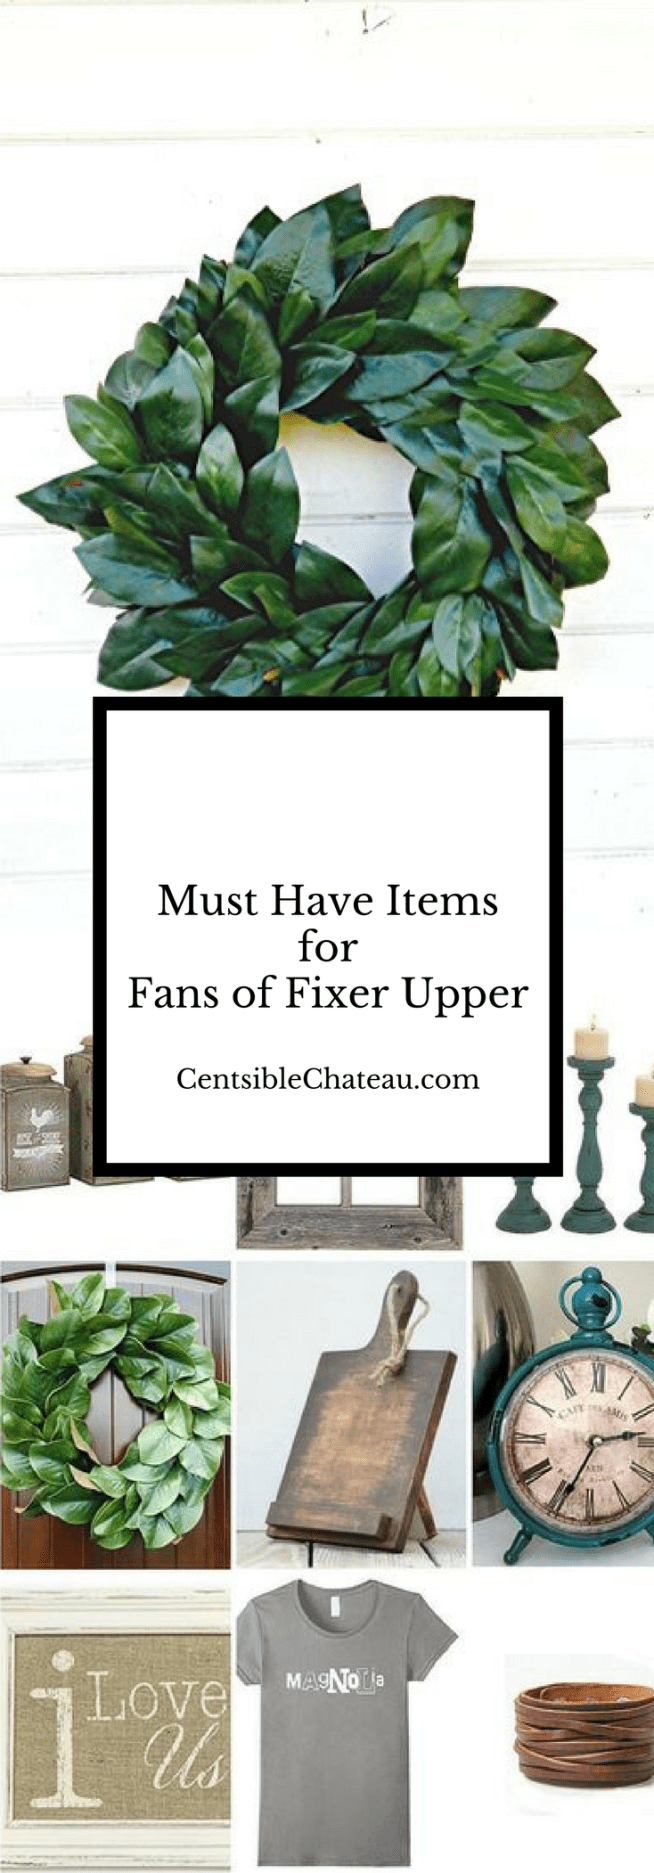 Must Have Items for Fans of Fixer Upper on HGTV